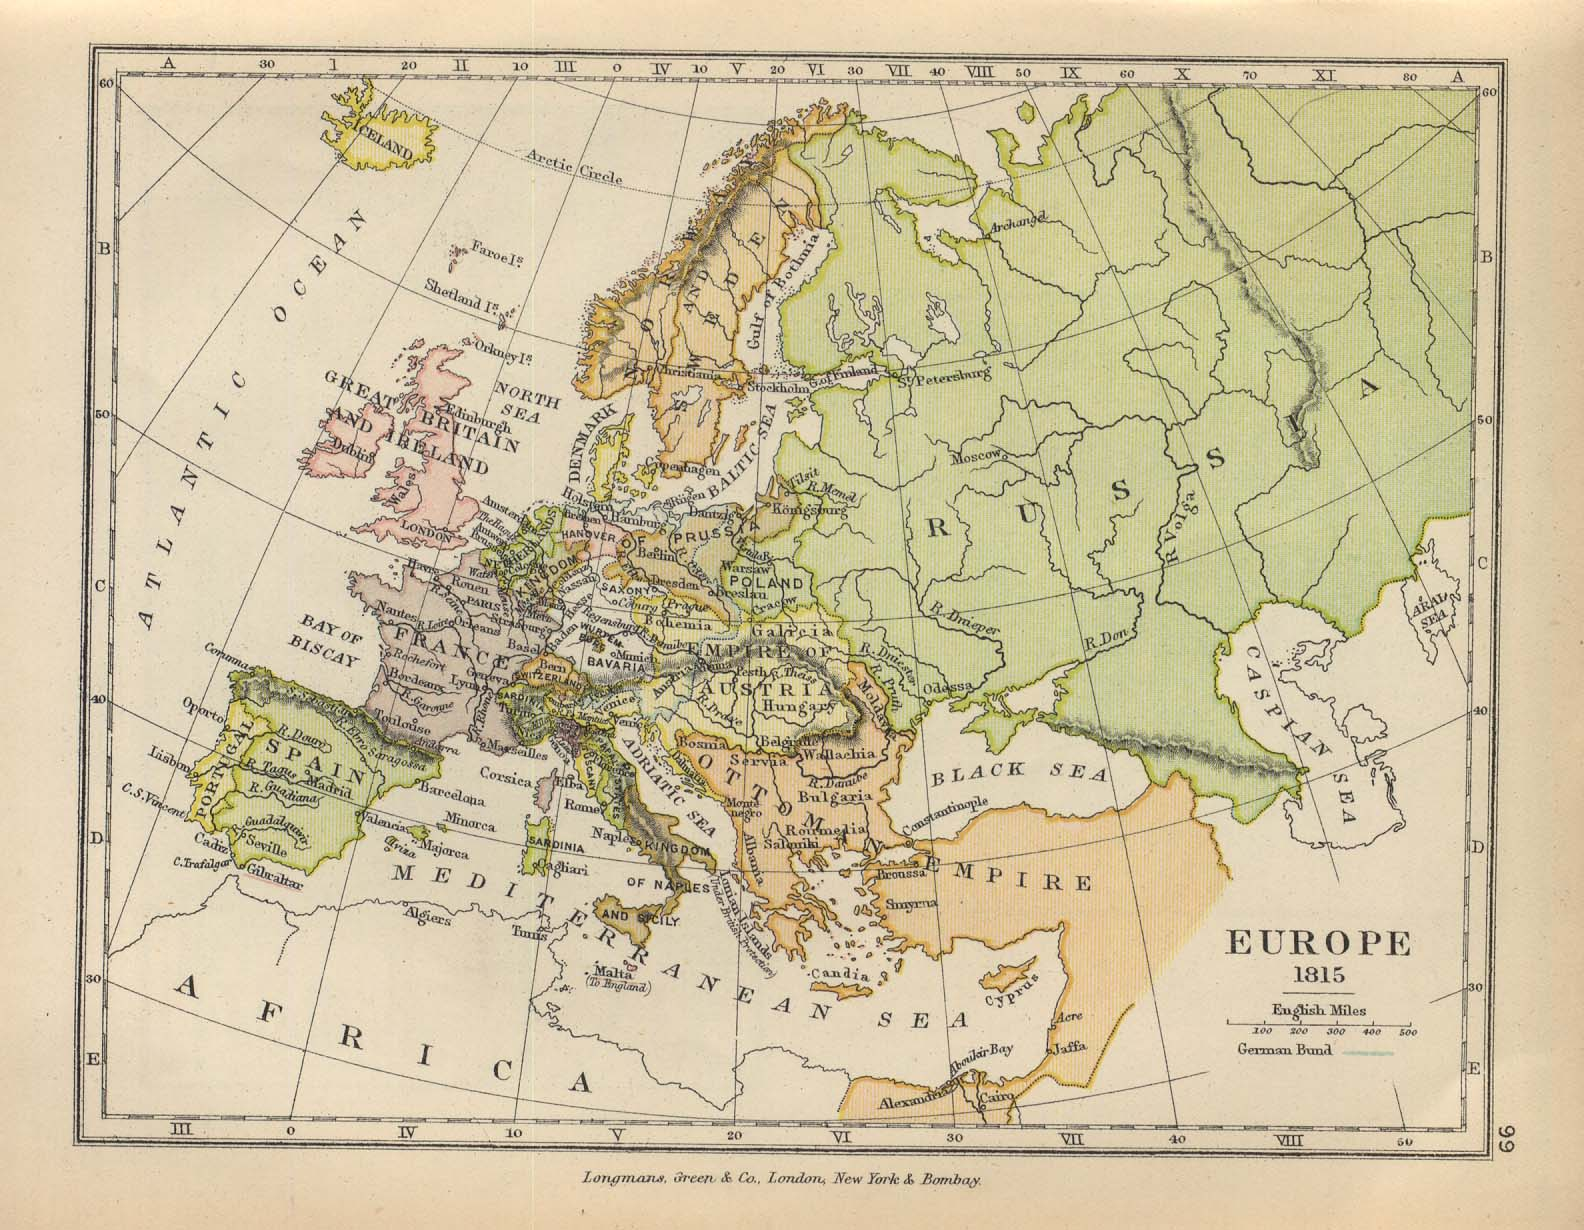 Historical maps of europe europe 1815 charles gumiabroncs Choice Image